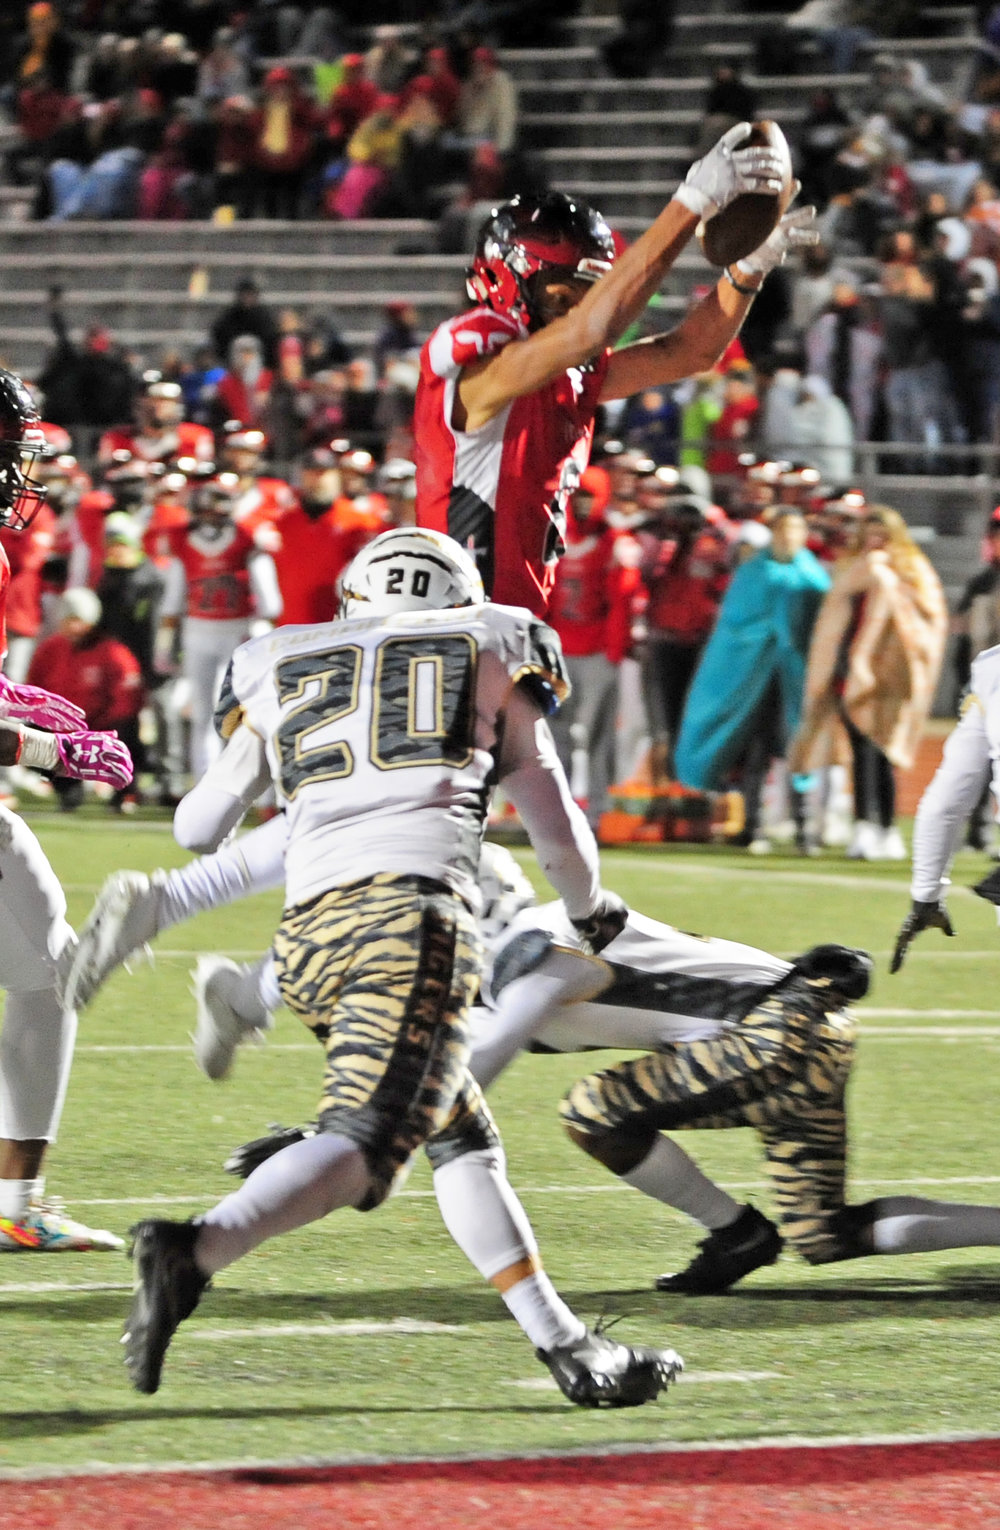 NICK INGRAM/Citizen photo Park Hill senior wide receiver Ronnie Bell, right, leaps toward a Lee's Summit defender on his way into the end zone during a Class 6 District 4 semifinal Friday, Oct. 27 at Park Hill Disrict Stadium in Kansas City, Mo.